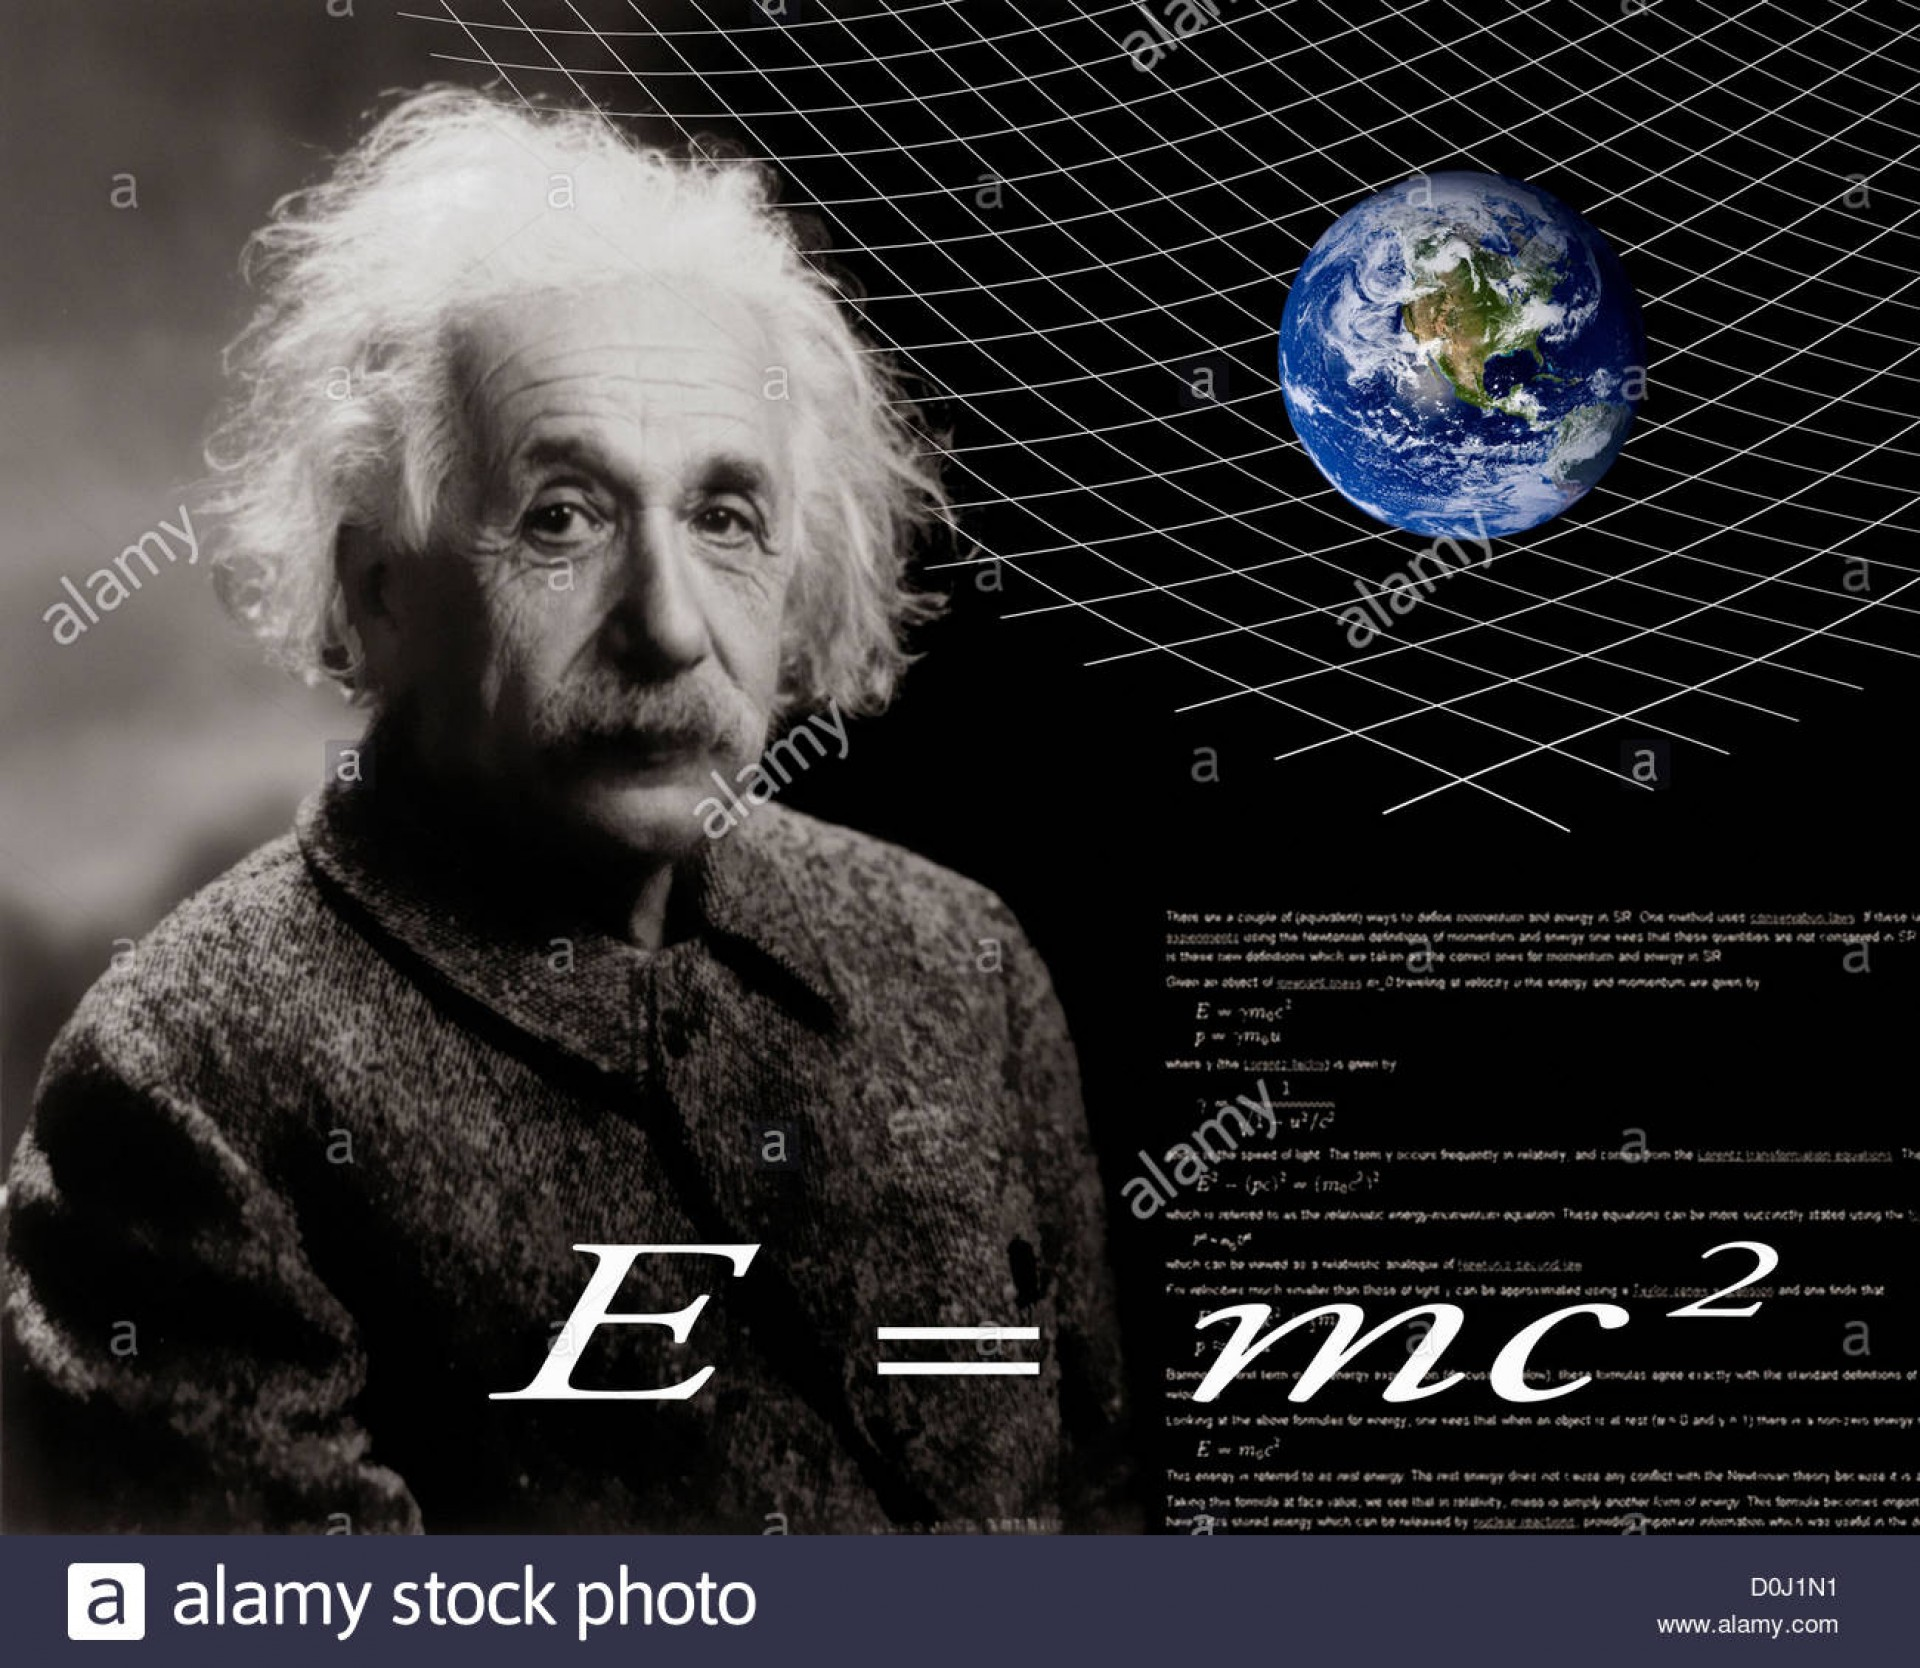 012 Photo Illustration Of Albert Einstein And The Theory Relativity D0j1n1 Essay Awesome Pdf Essays In Humanism 200 Words 1920